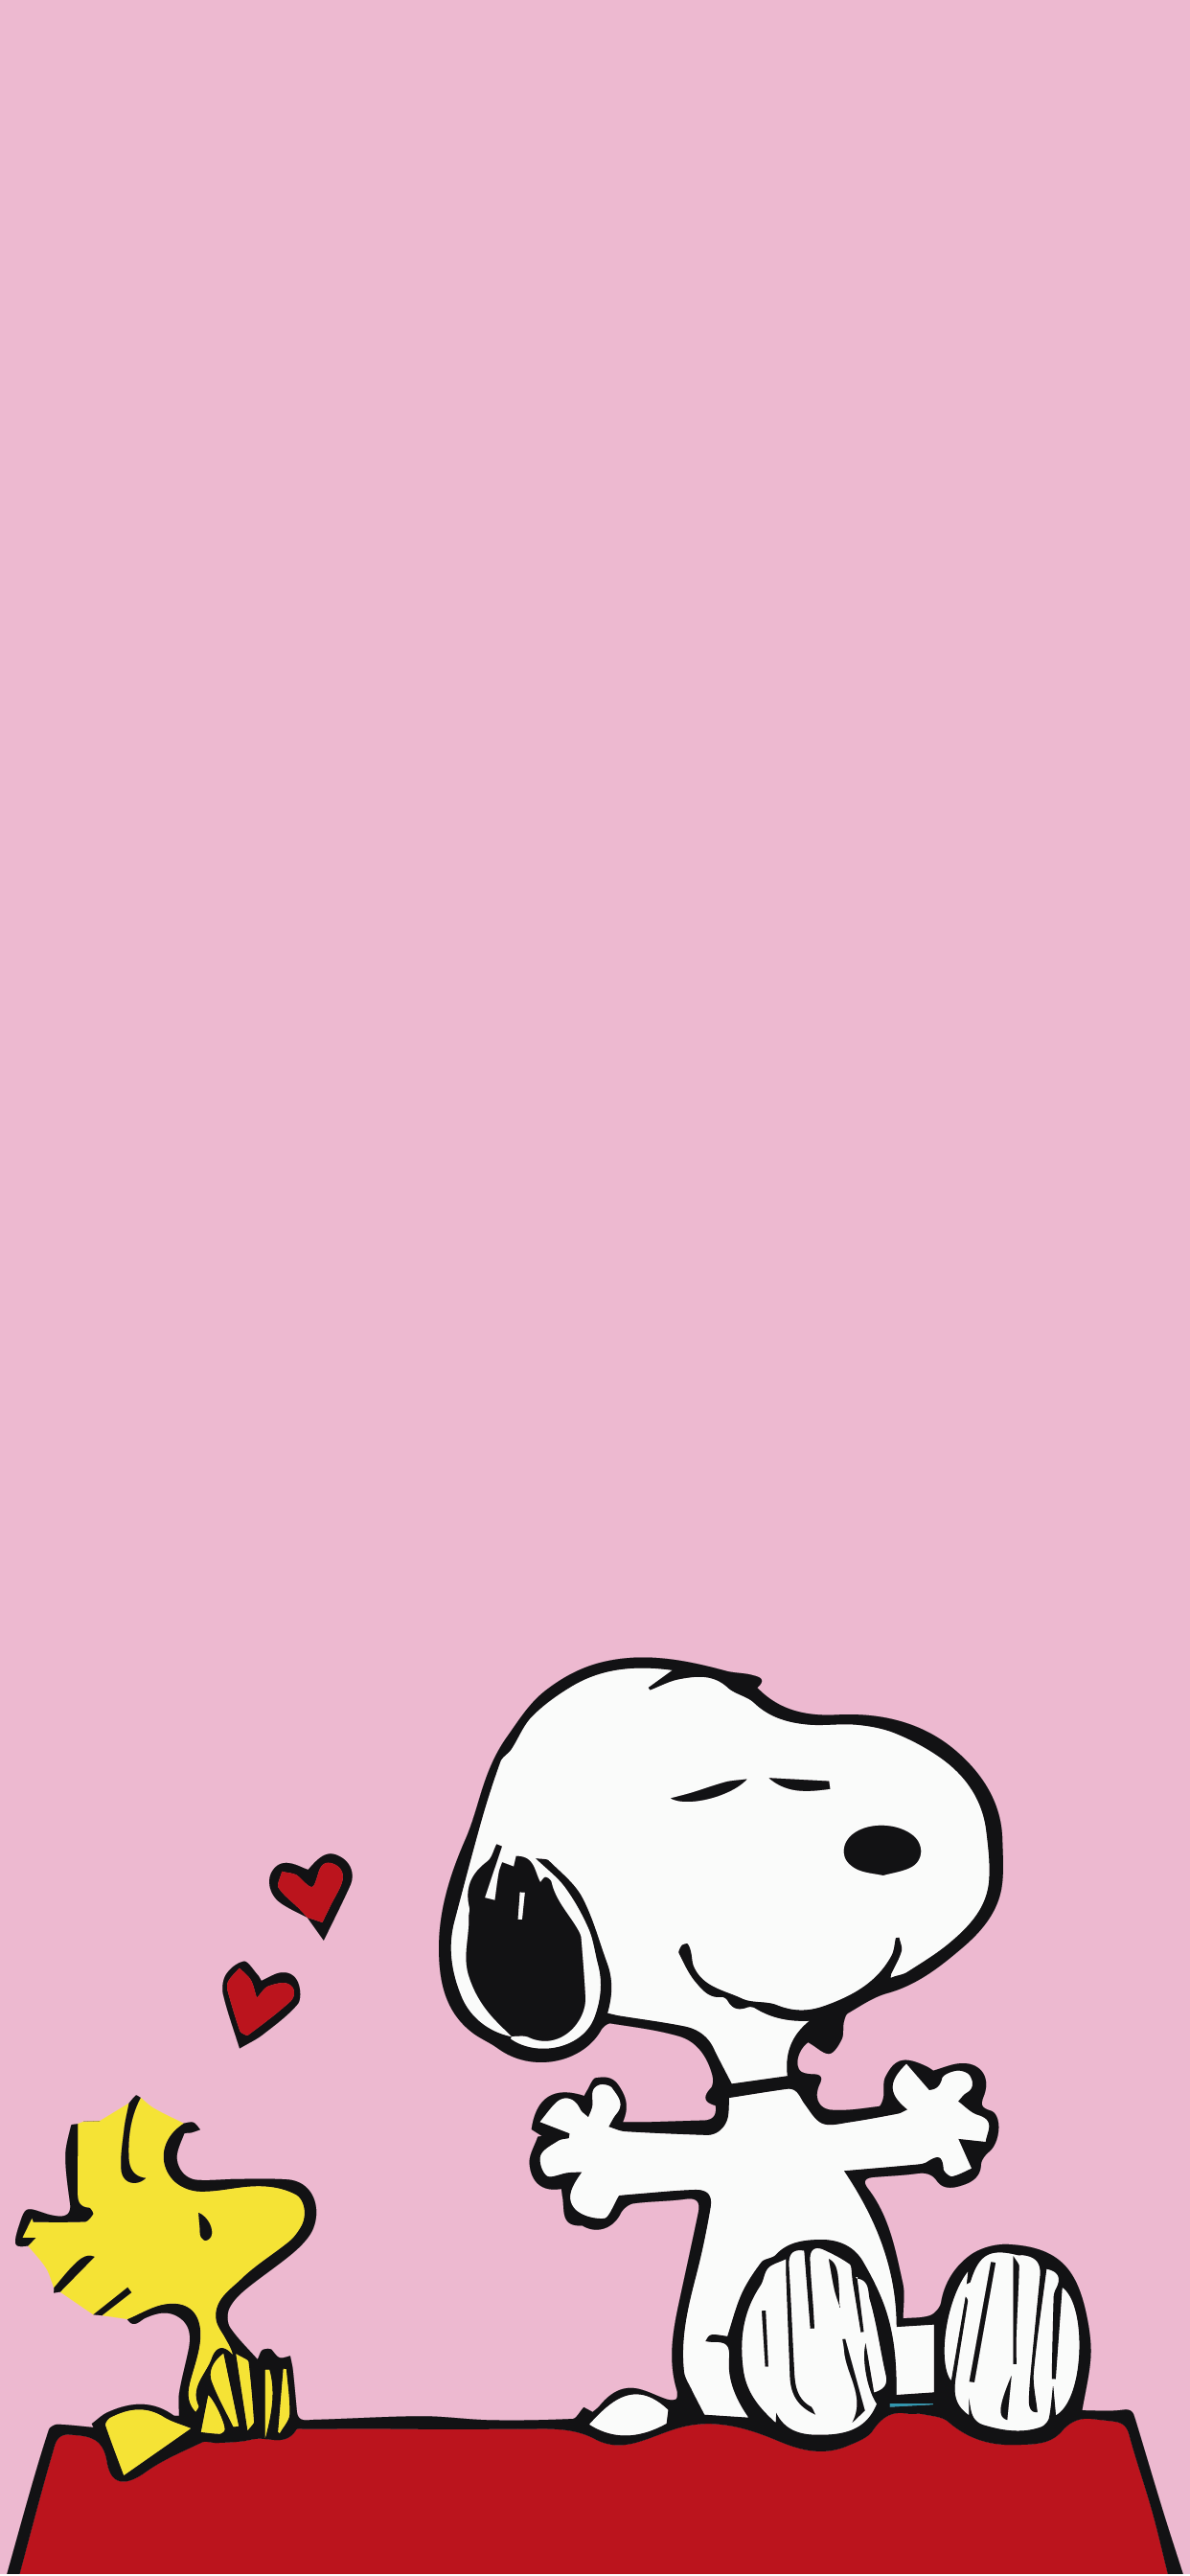 Snoopy and Woodstock bird Cute wallpaper hd for mobile phone